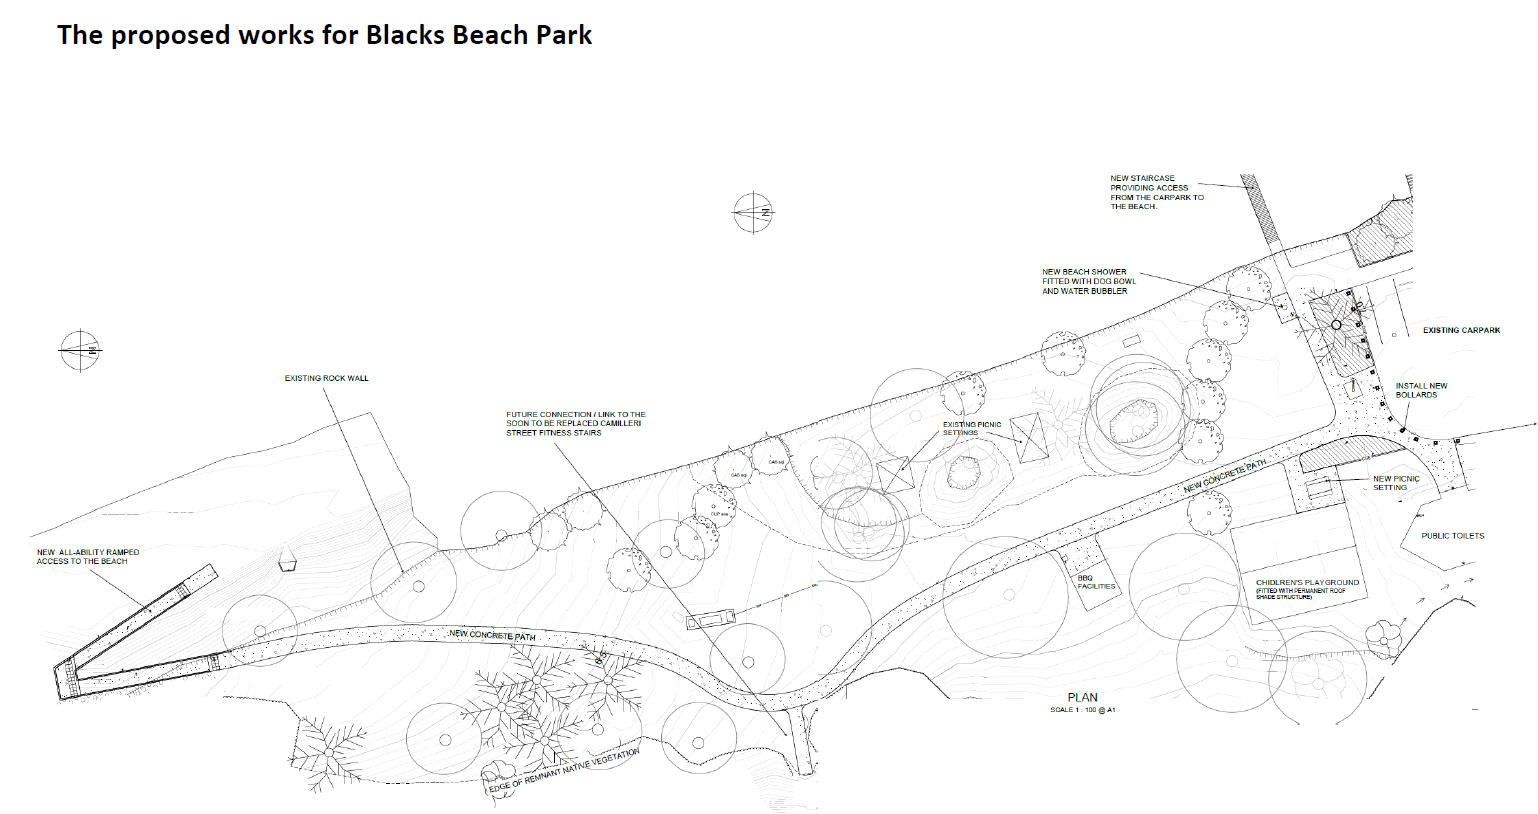 The design for the proposed works